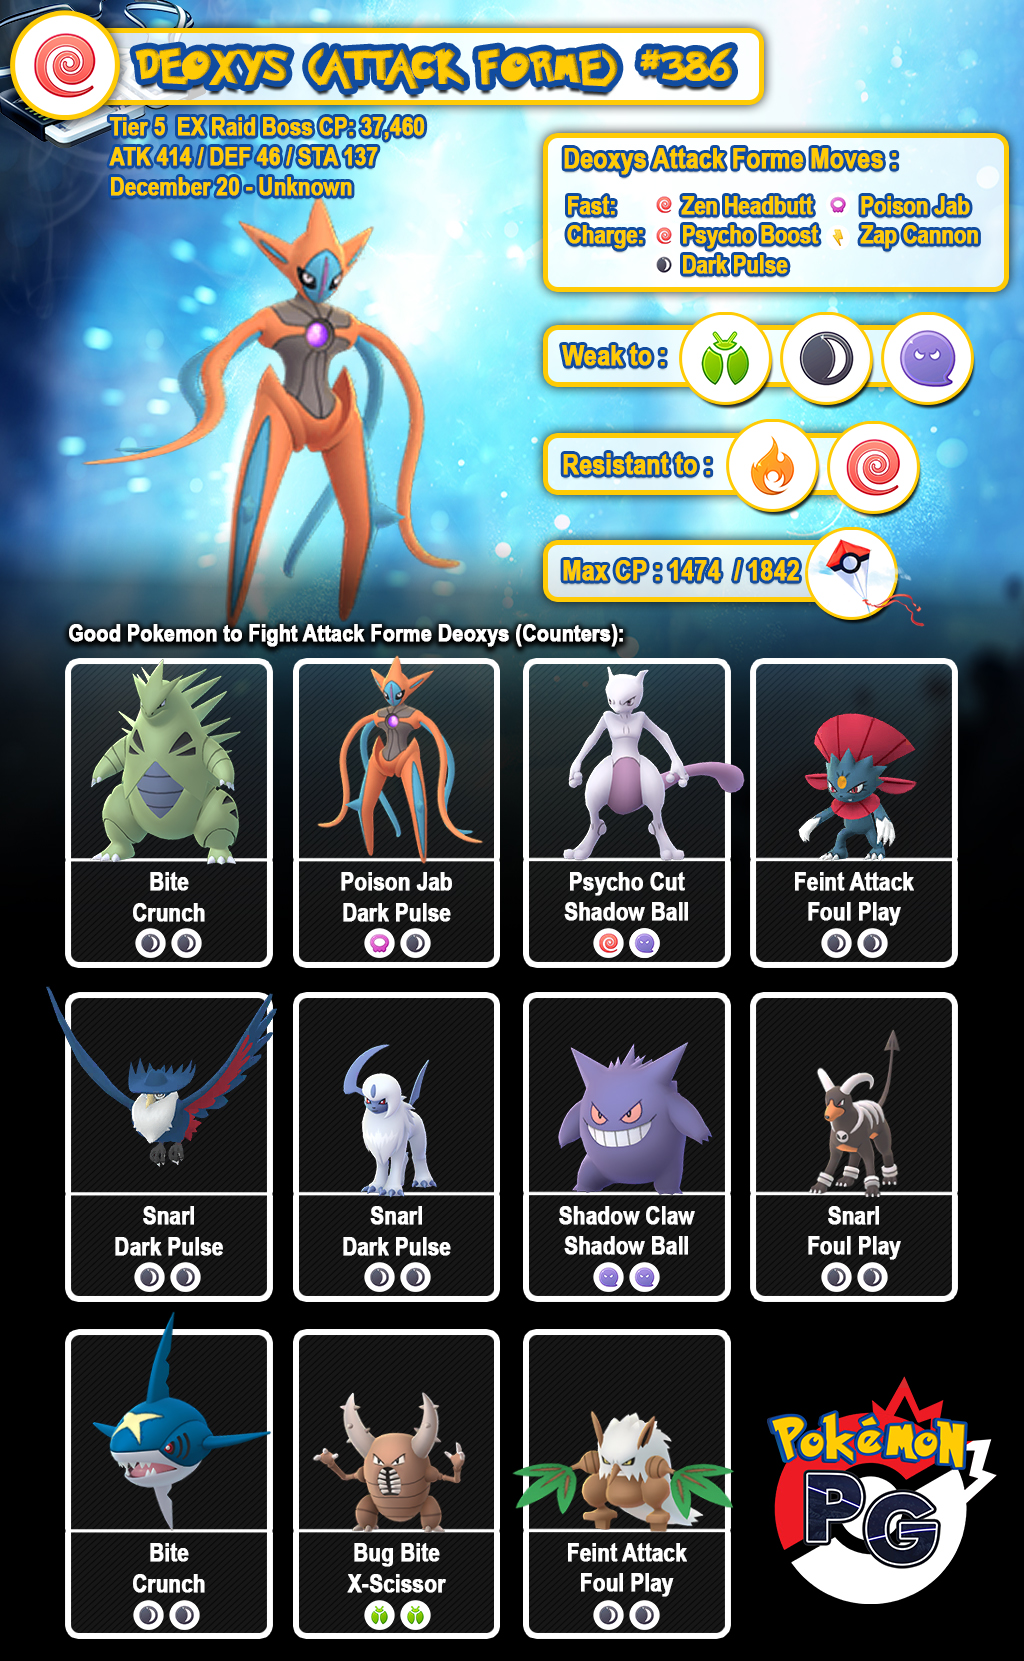 Deoxys Attack Forme Raide Guide